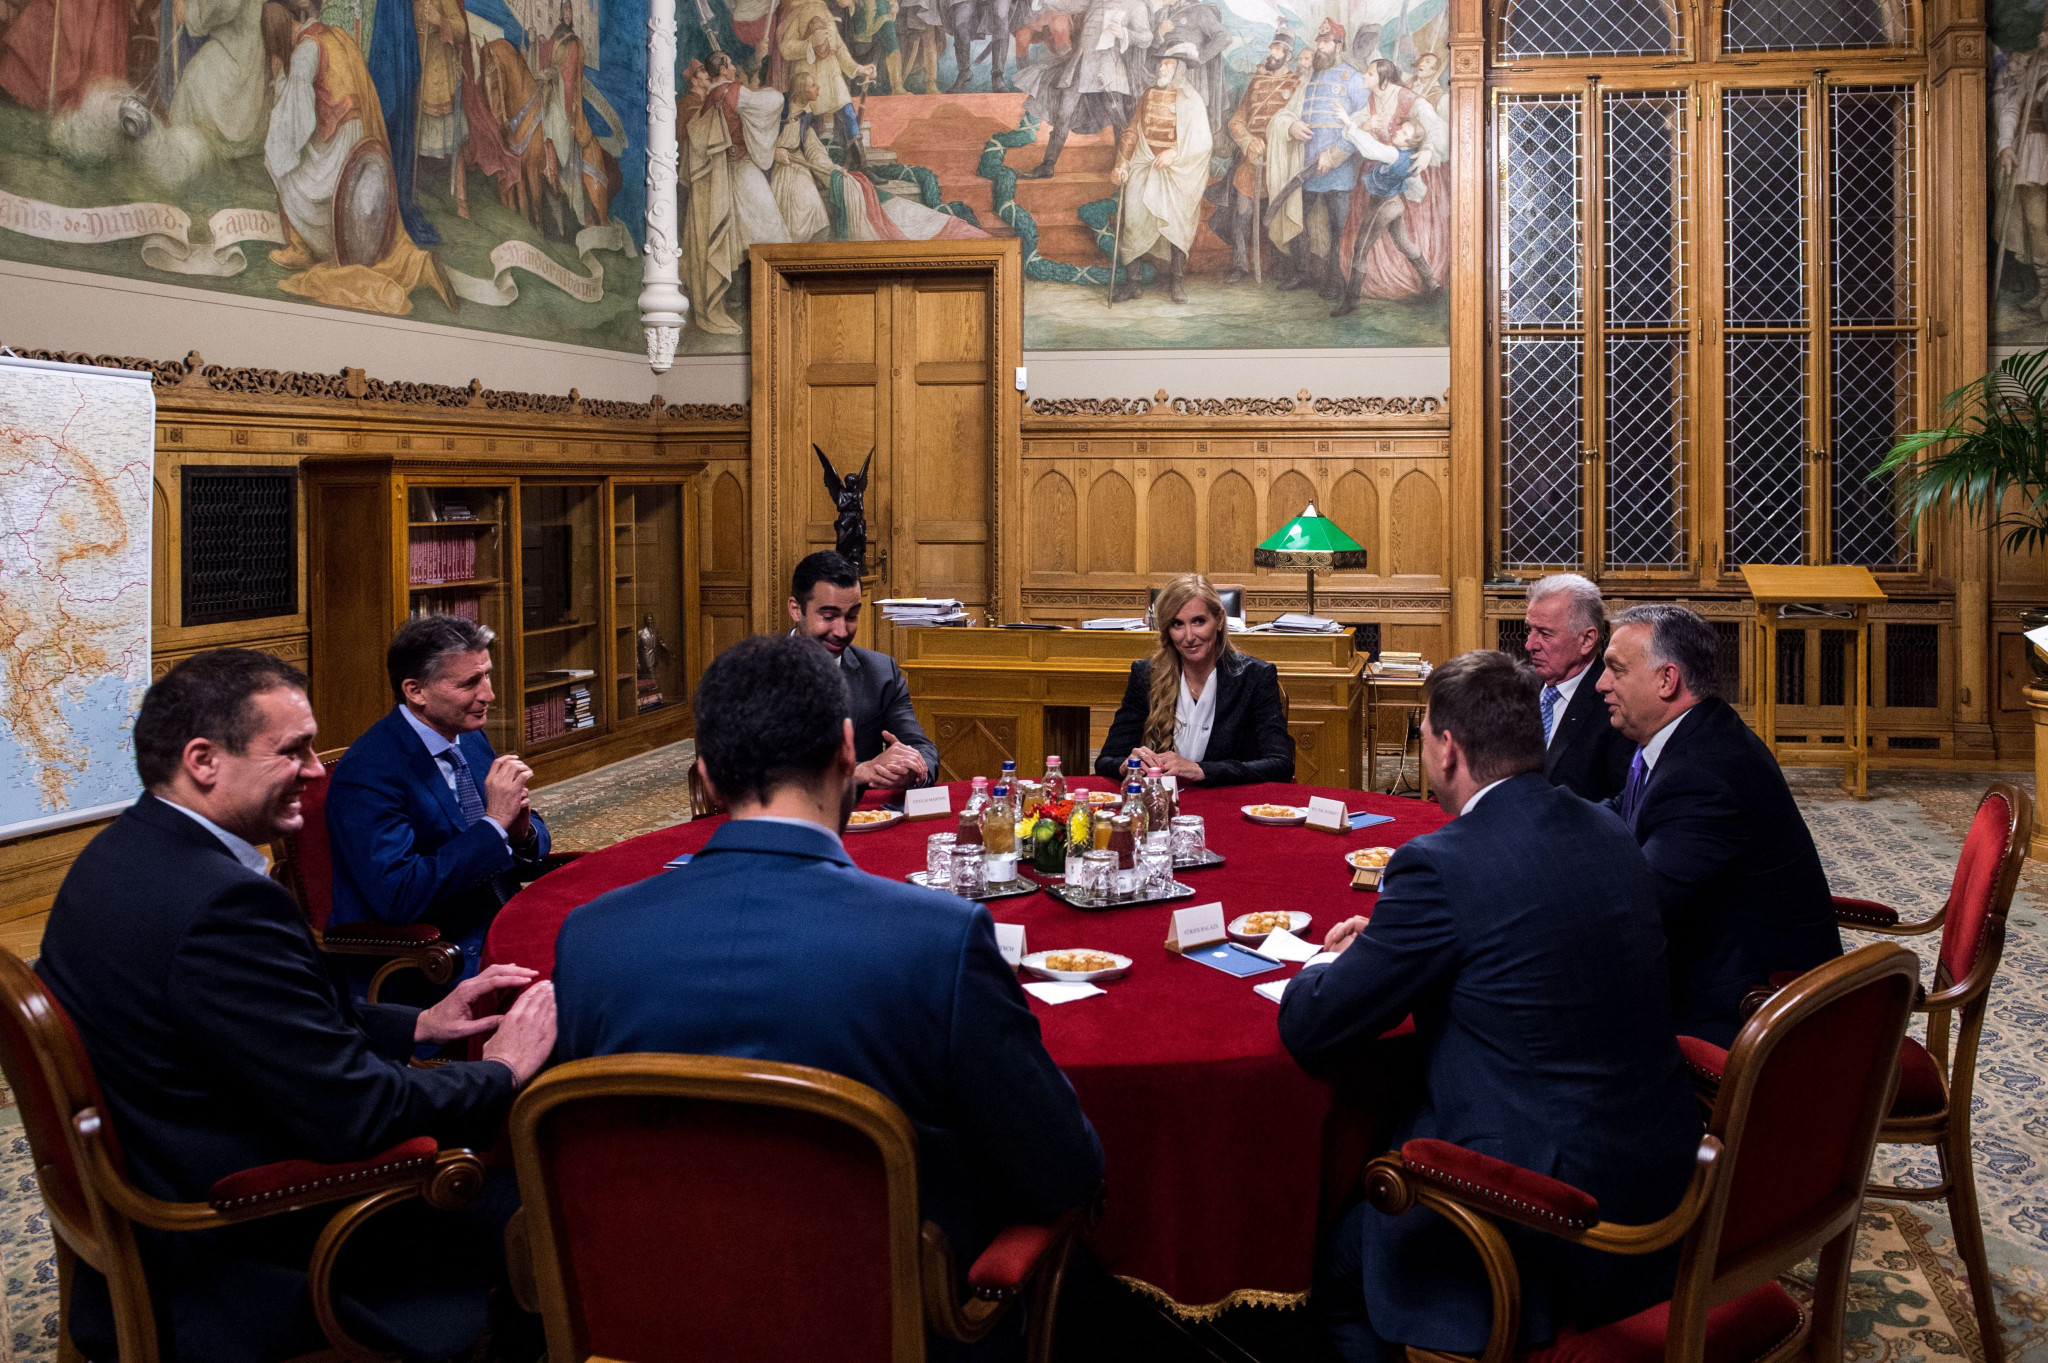 Sebastian Coe met a high-level delegation in Budapest, including Hungarian Prime Minister Viktor Orbán ©Hungarian Government